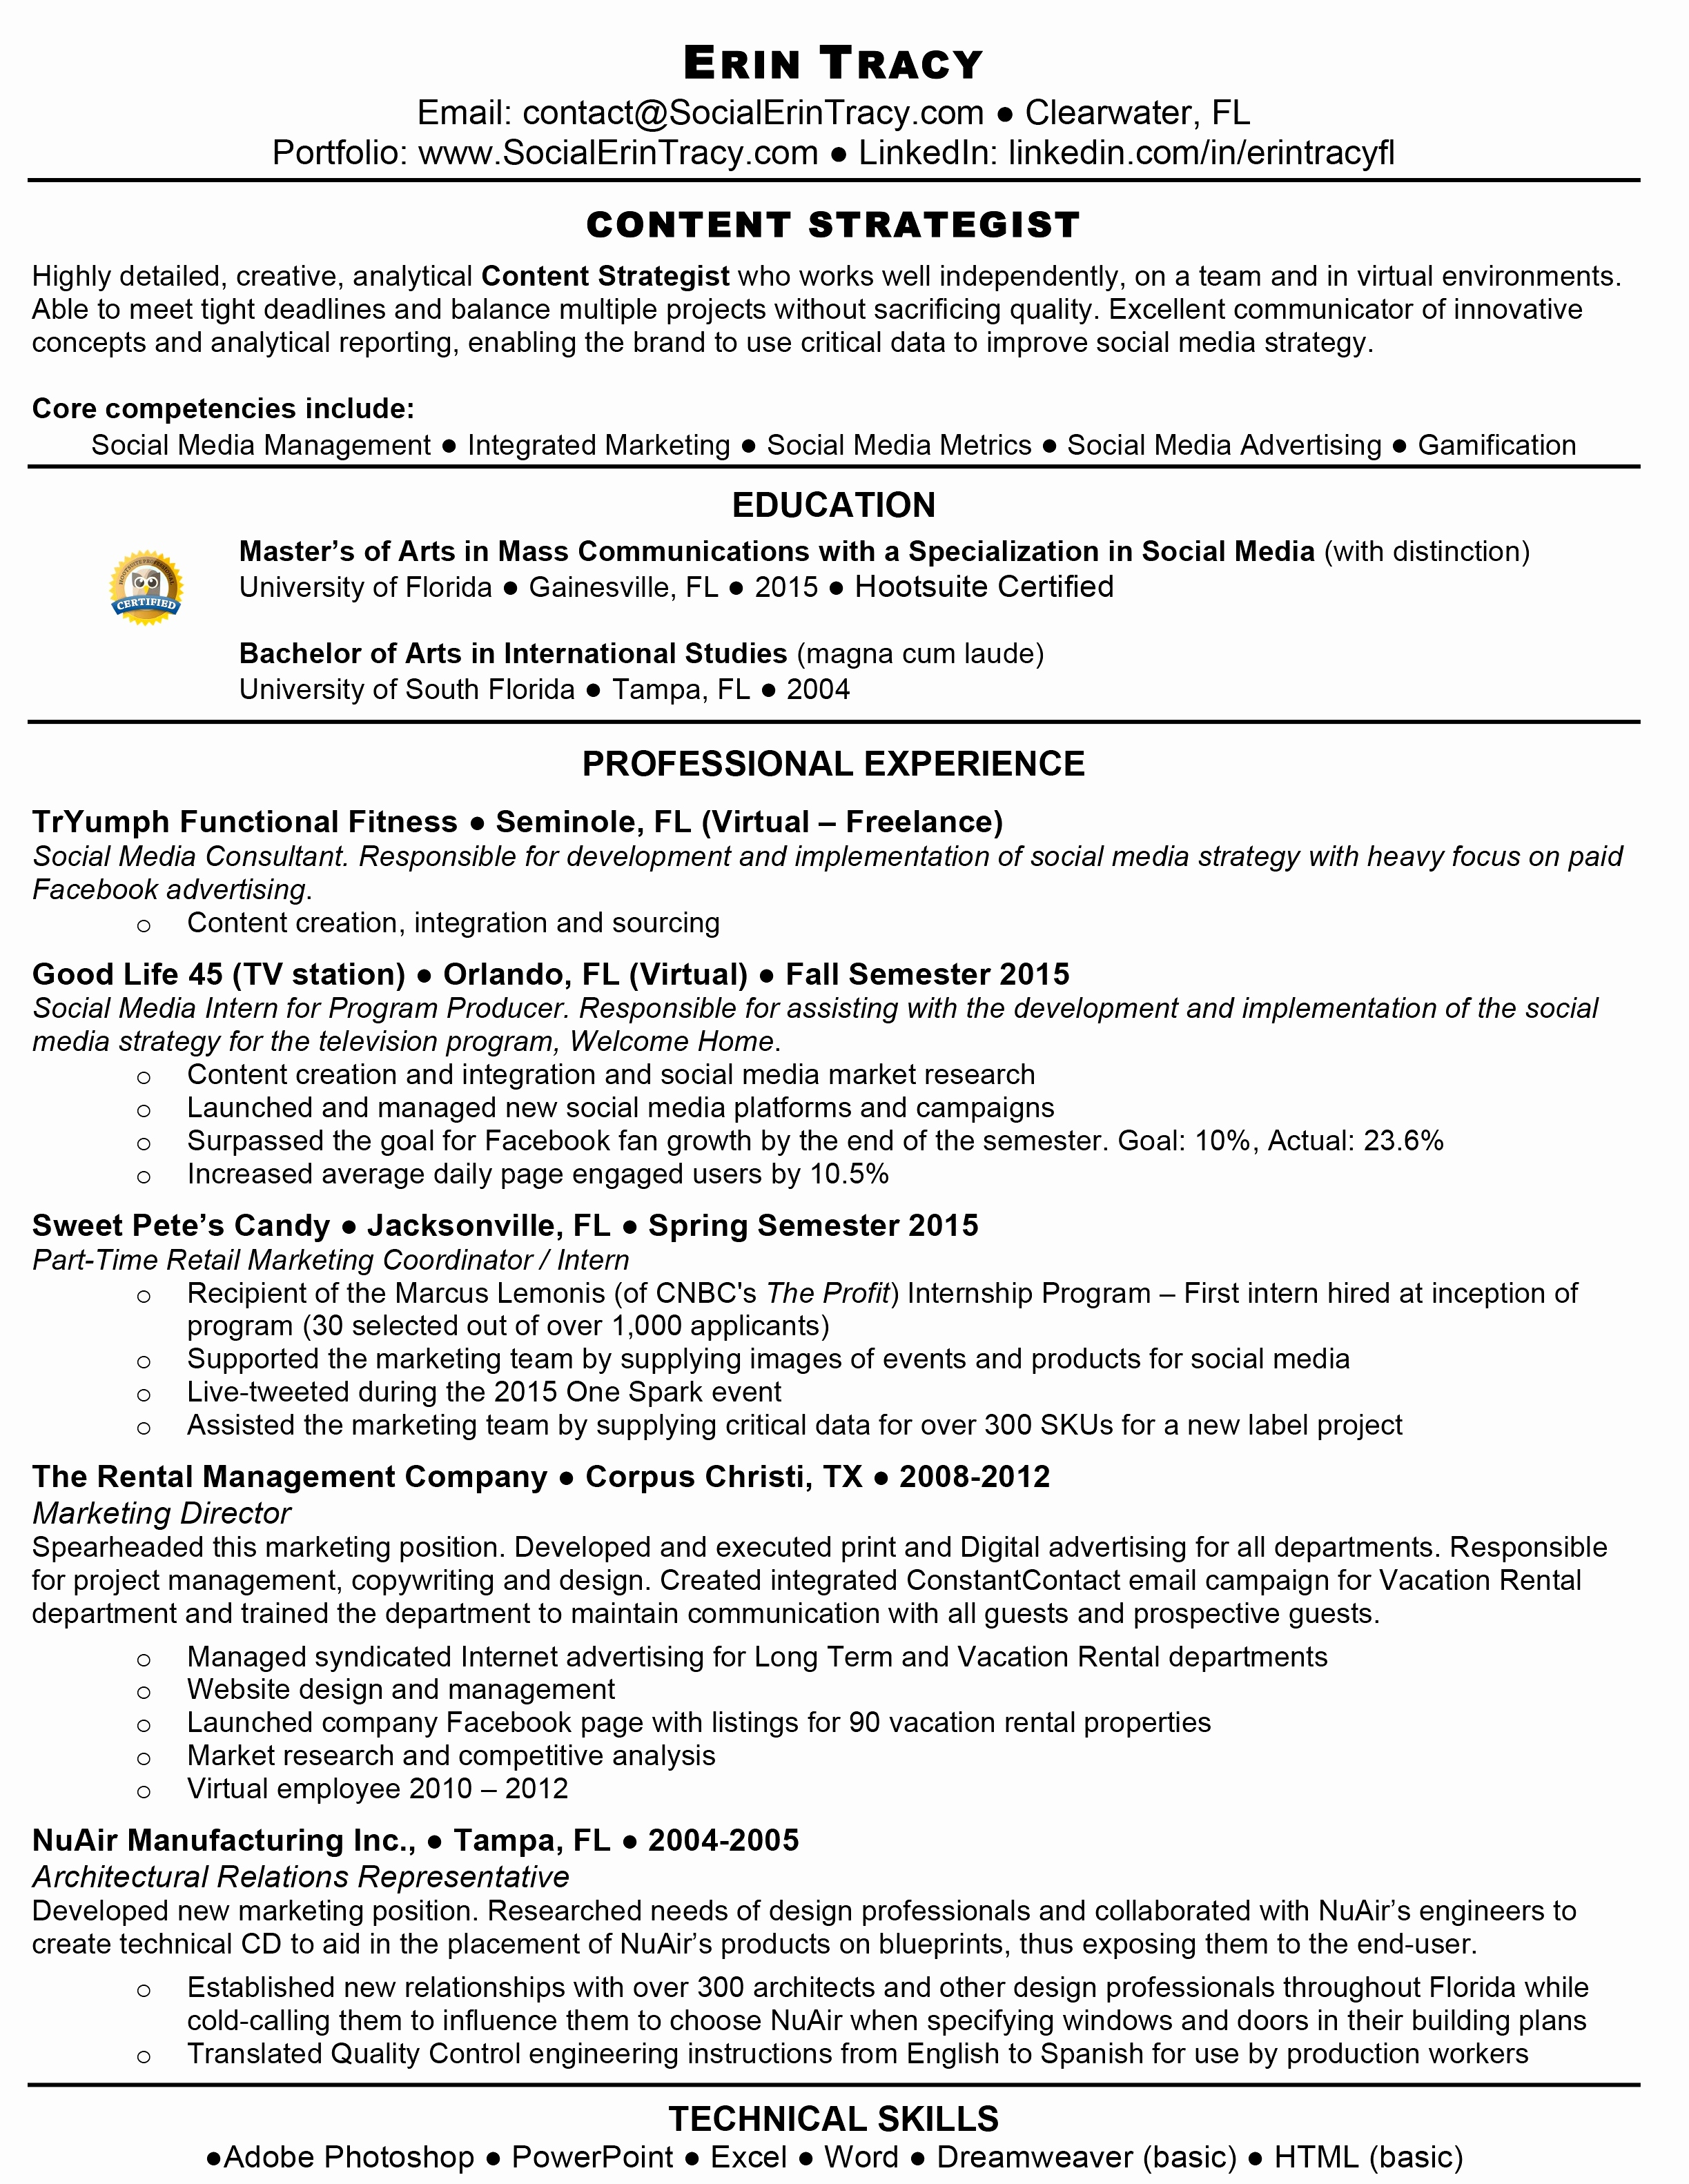 letter of competency template Collection-Core petencies Resume Examples Inspirational Great Cover Letter Templates Awesome Job Fer Letter Template Us Copy 13-j